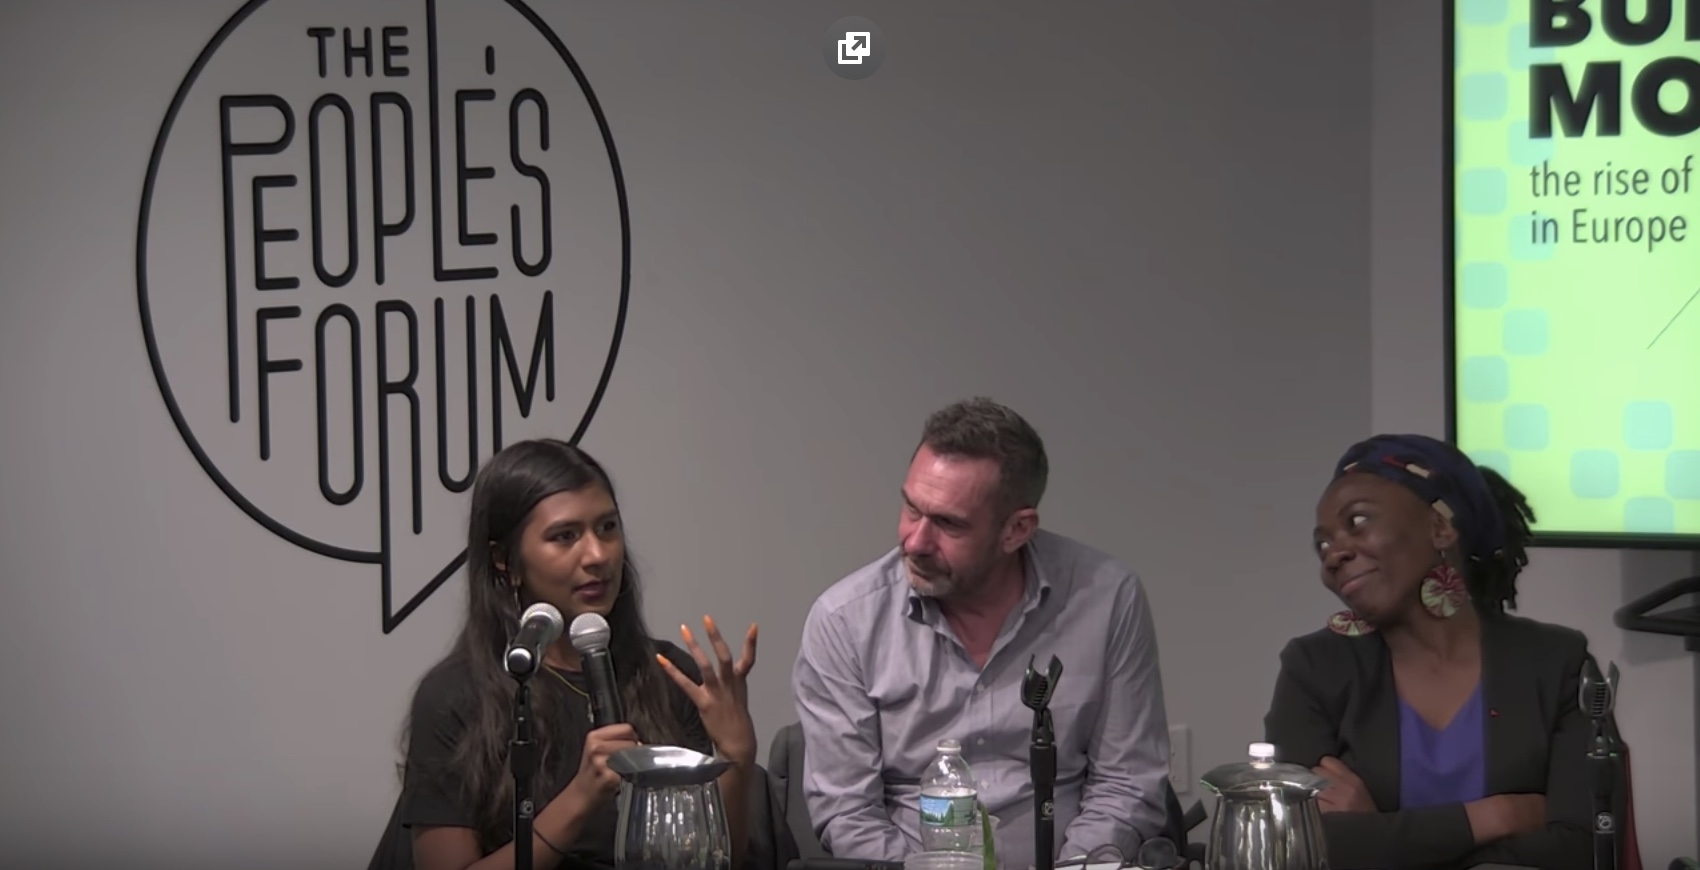 Building Momentum: the Rise of Left Politics in Europe with Ash Sarkar, Paul Mason and Danièle Obono